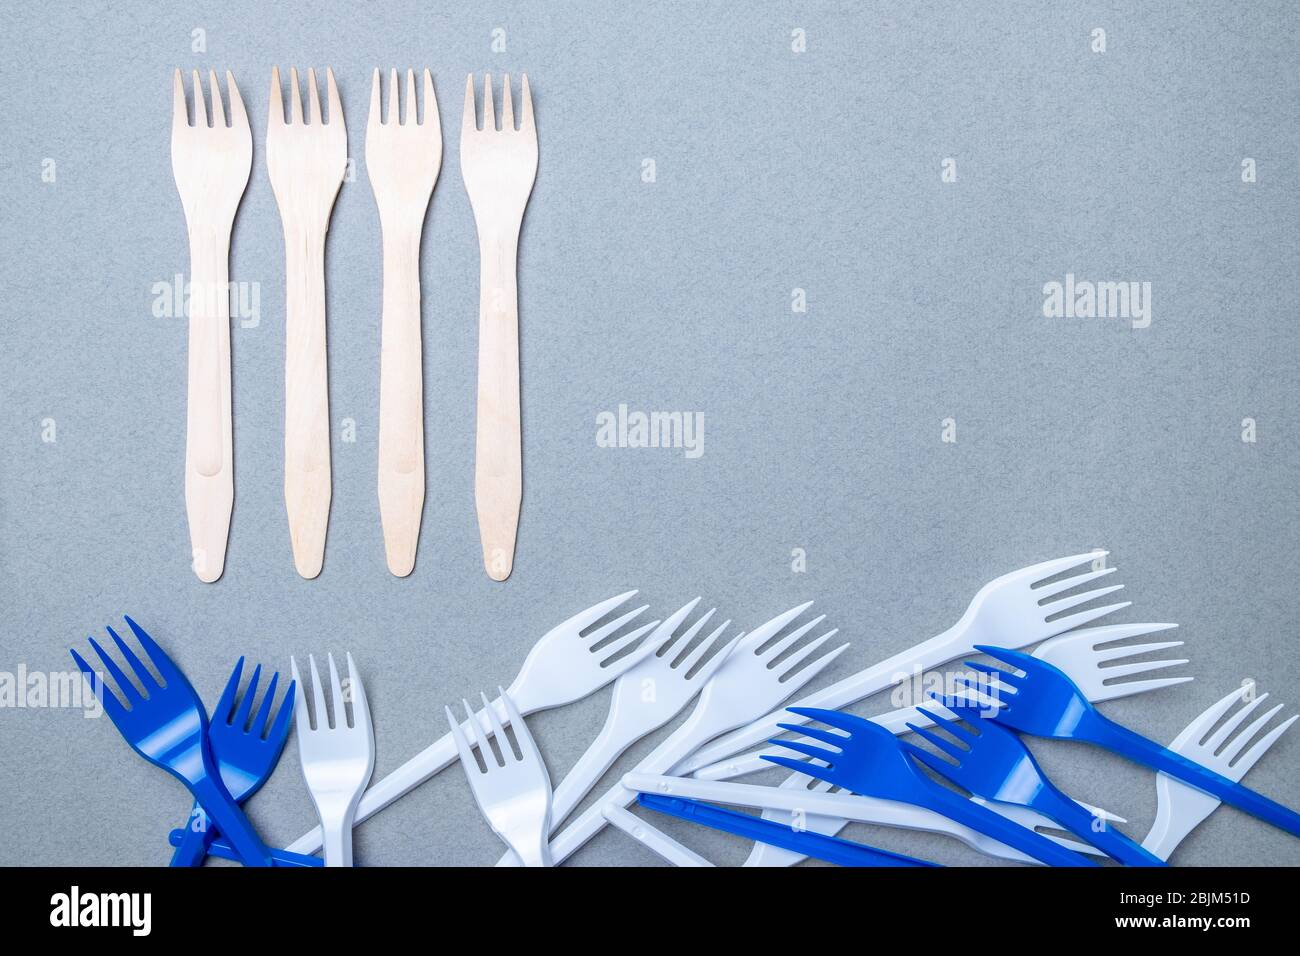 Forks made of wood and plastic on a gray background. Flat lay. Copy space. The concept of environmental pollution by difficult decomposable waste. Stock Photo